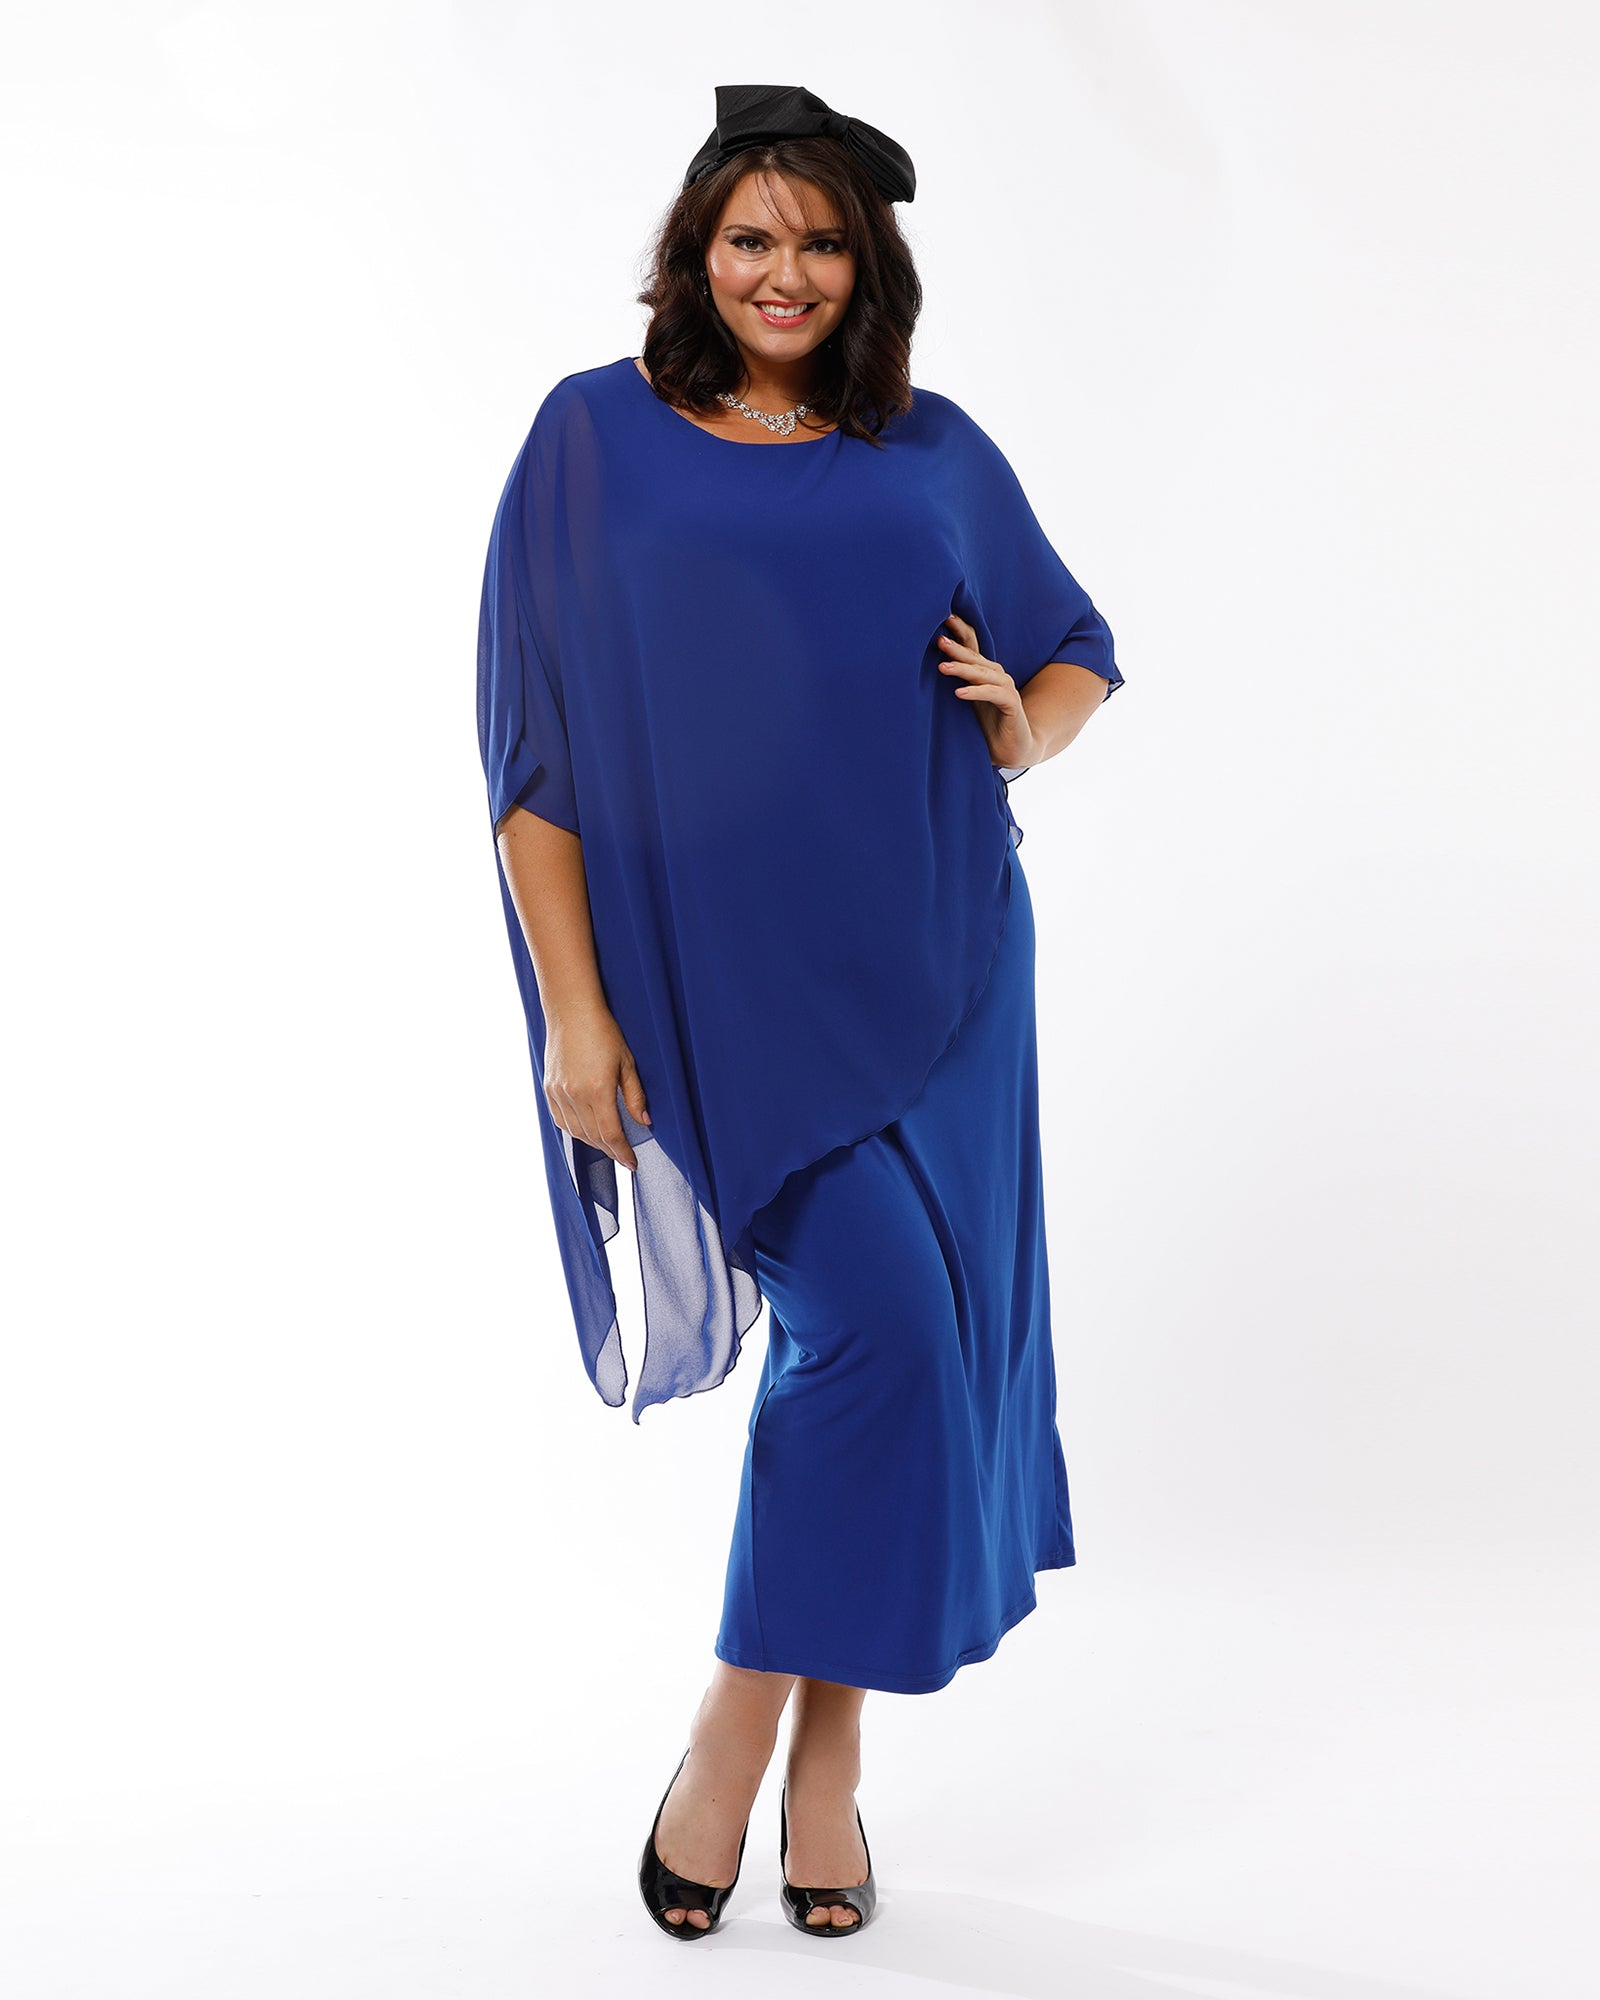 Plus size evening dress, Occasion dresses, Plus size formal dresses, RTM, Blue Evening Dress